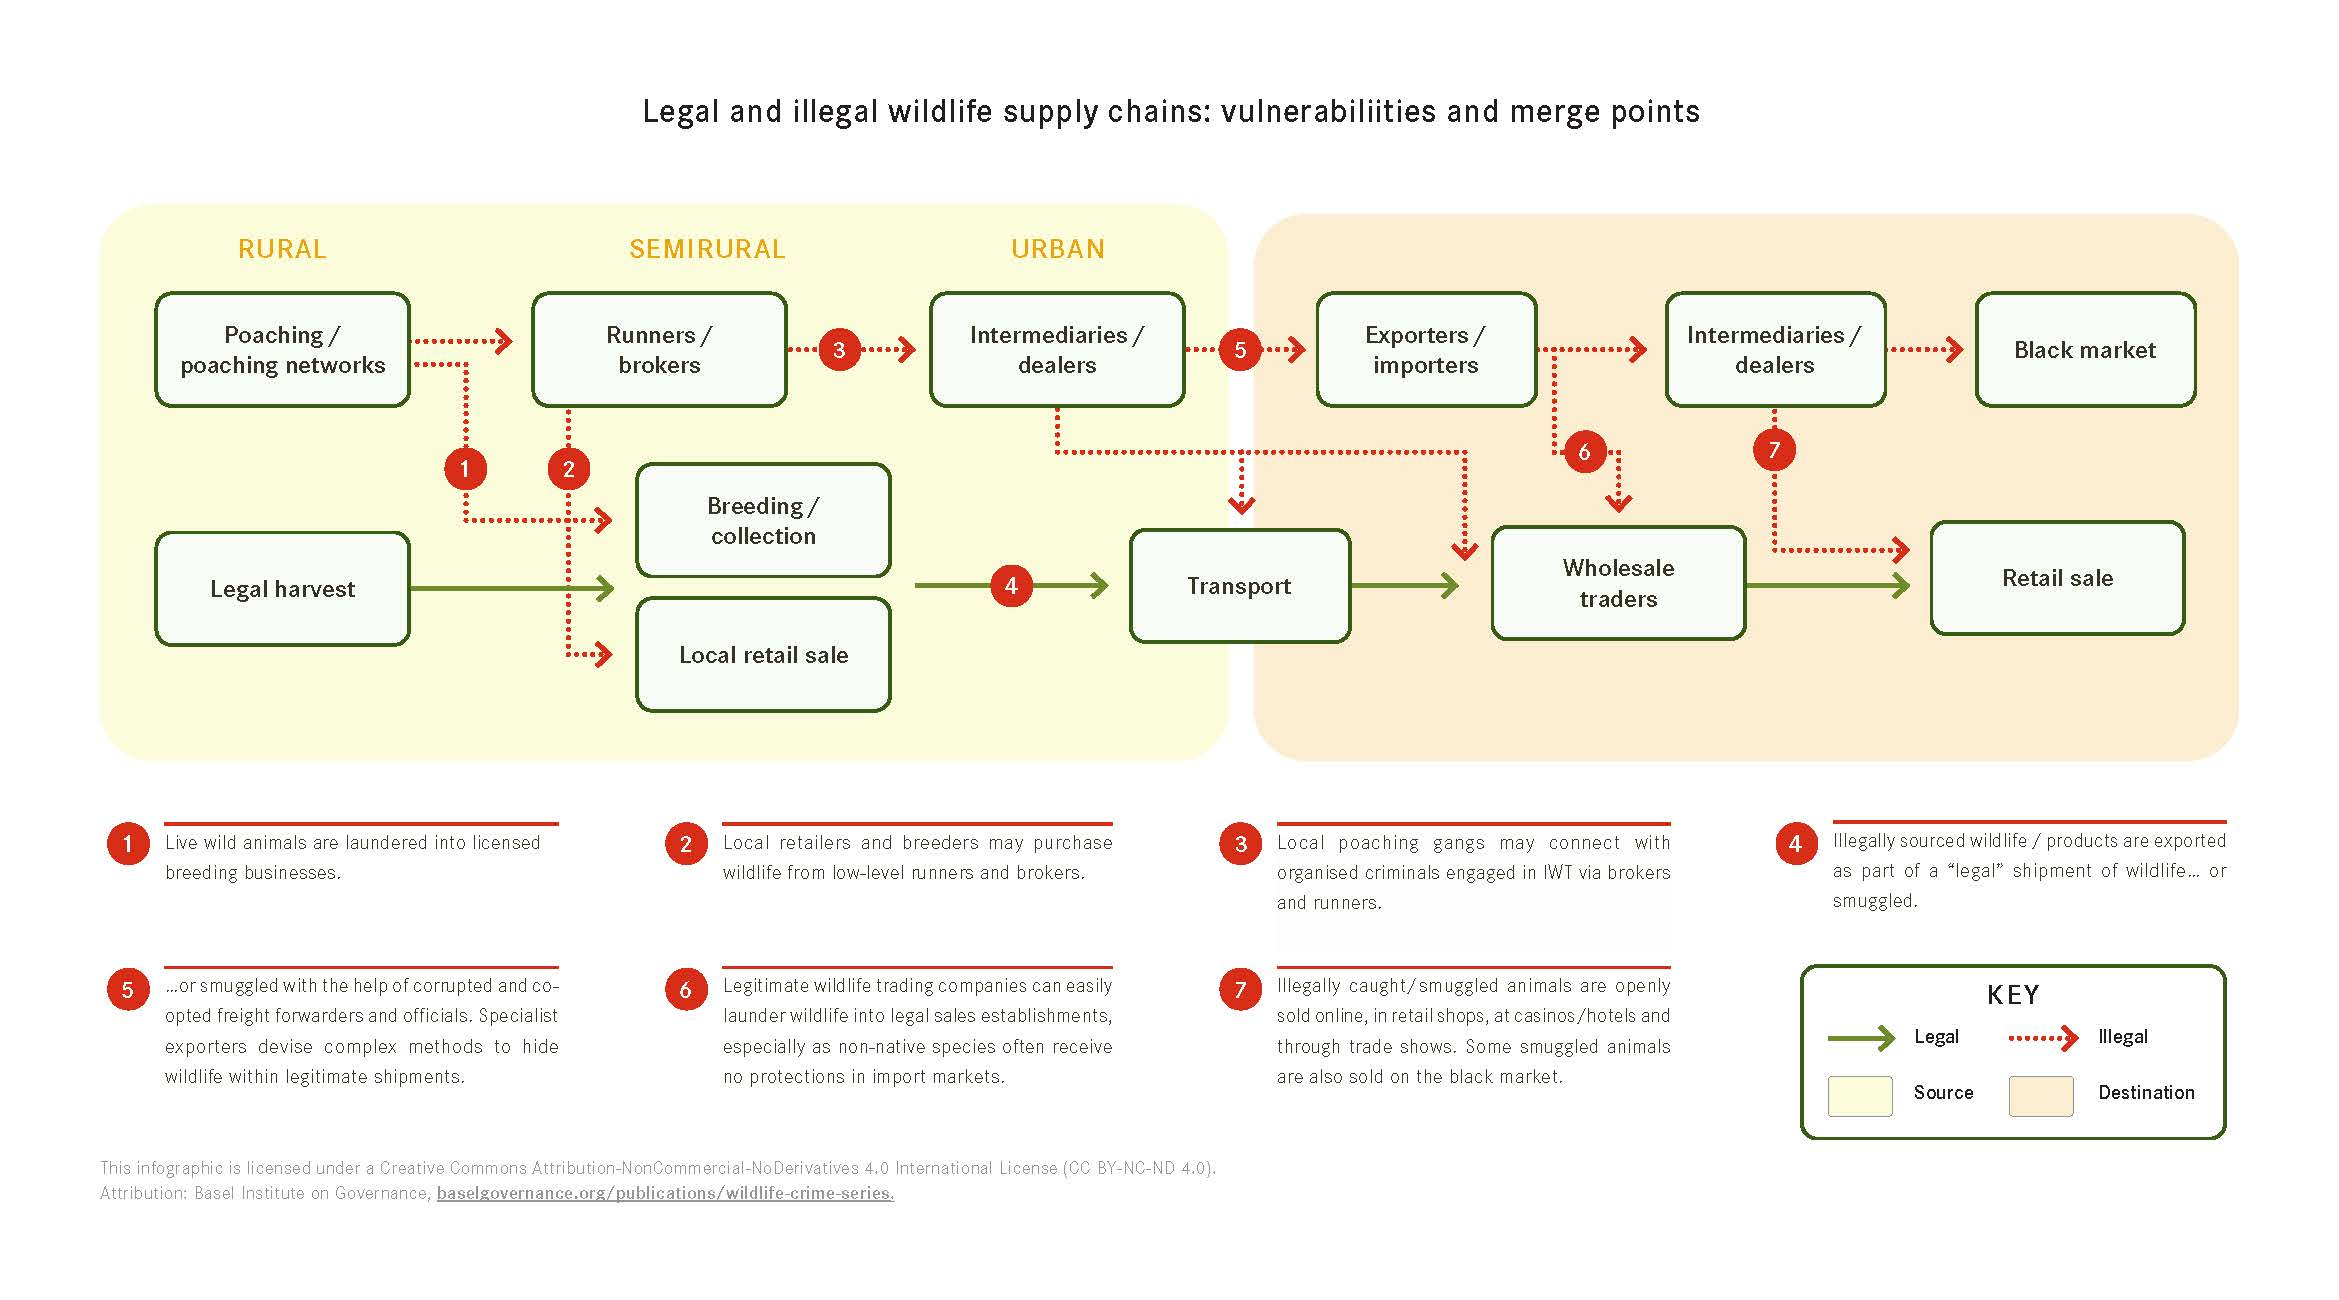 Legal and illegal wildlife supply chains - vulnerabilities and merge points